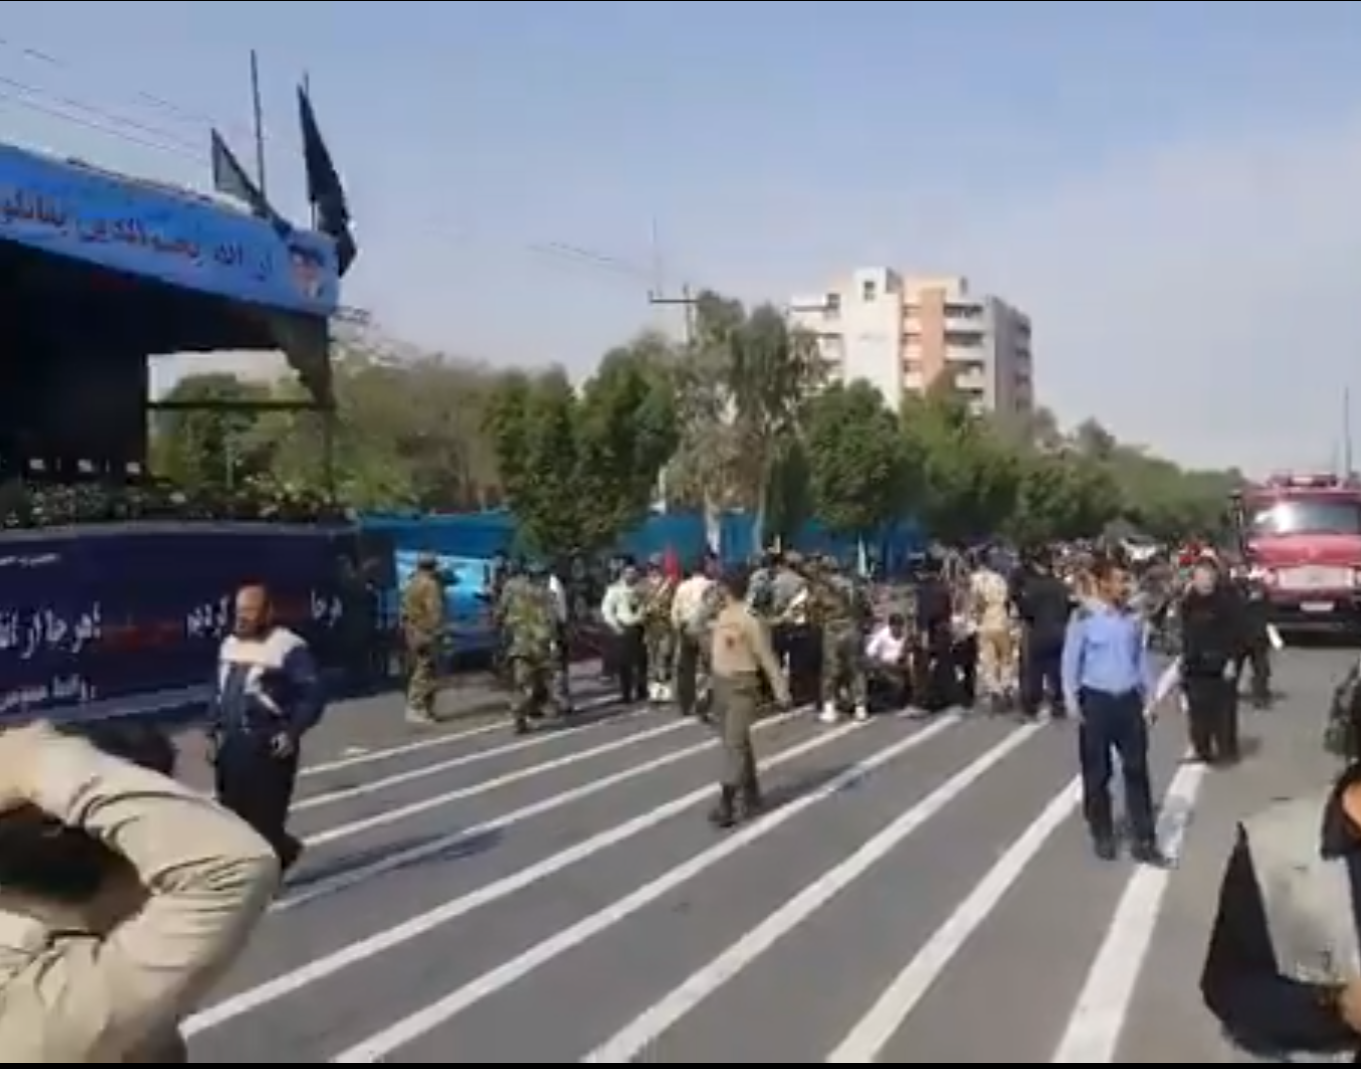 24 killed, including 12 Revolutionary Guards, in attack on Iran military parade